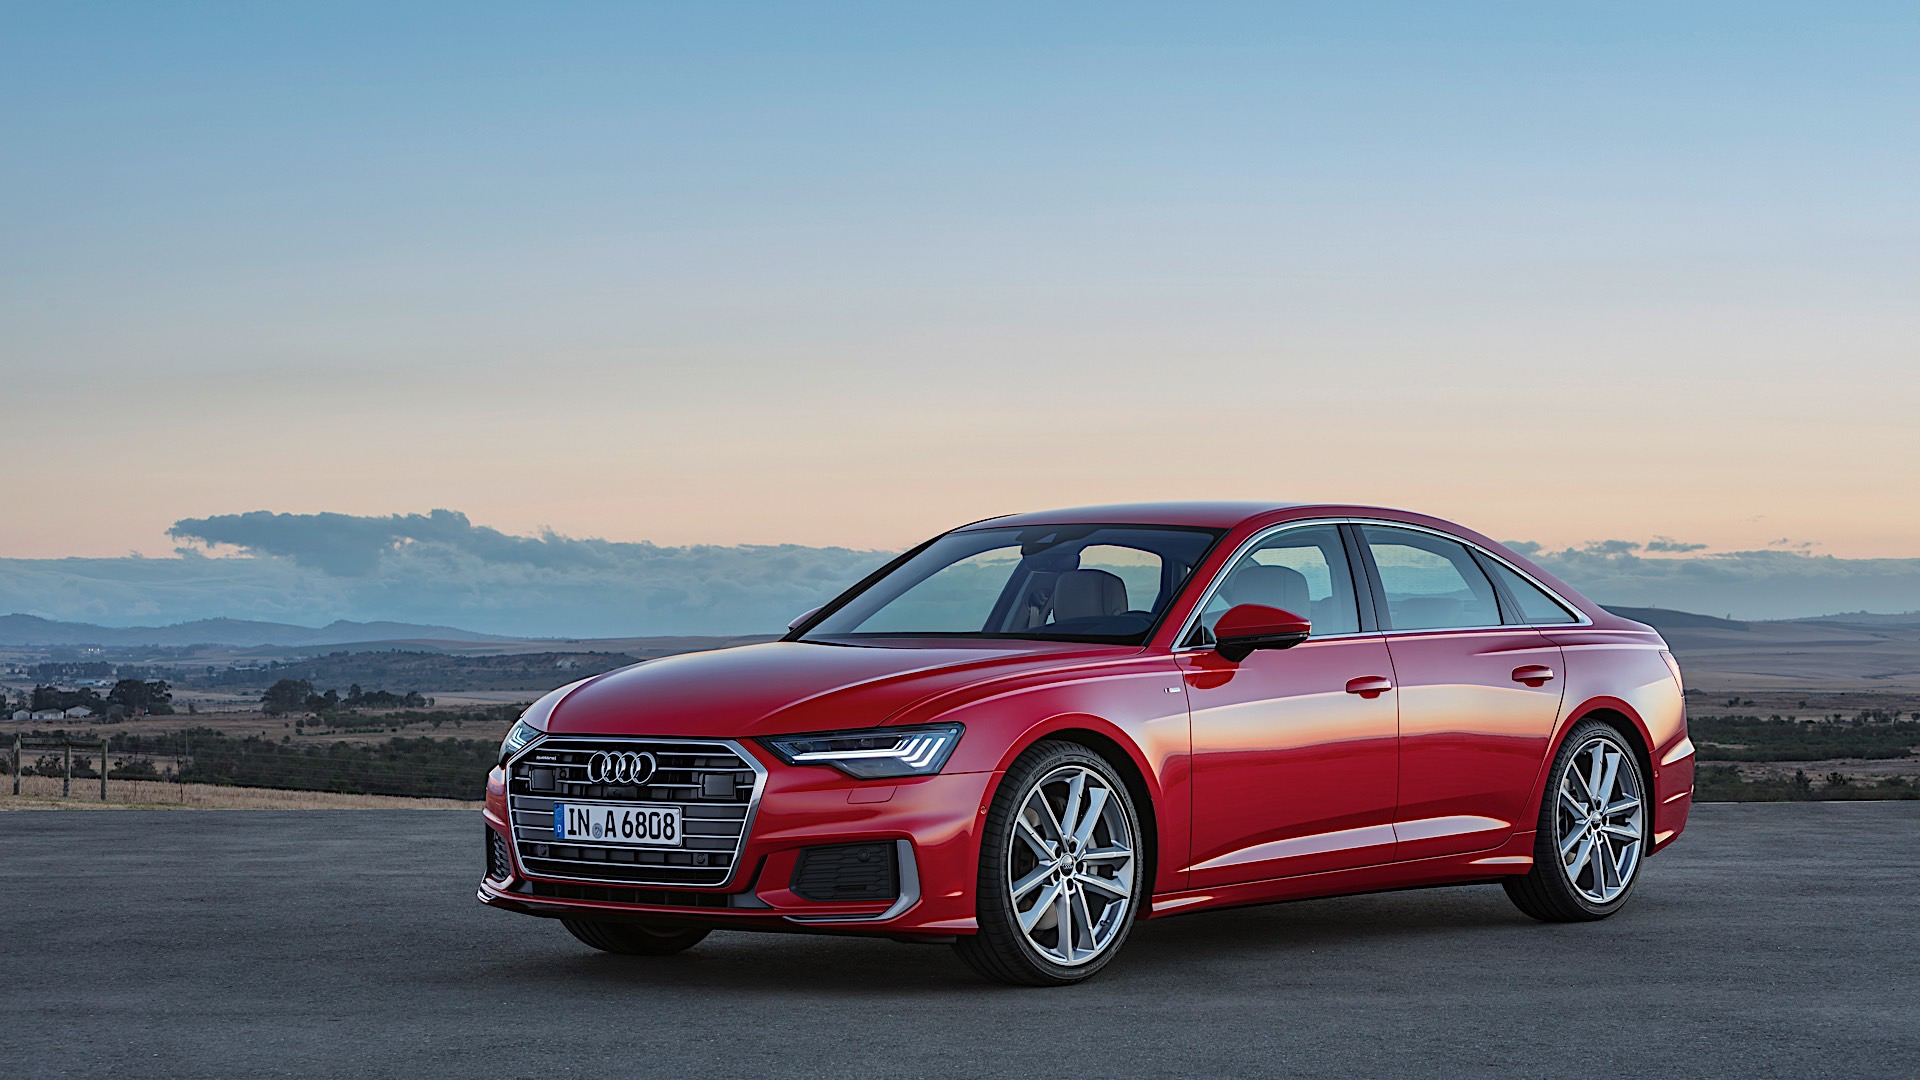 2018 Audi A6 Unveiled with 5 Series and E-Class Fixed in Its Sight